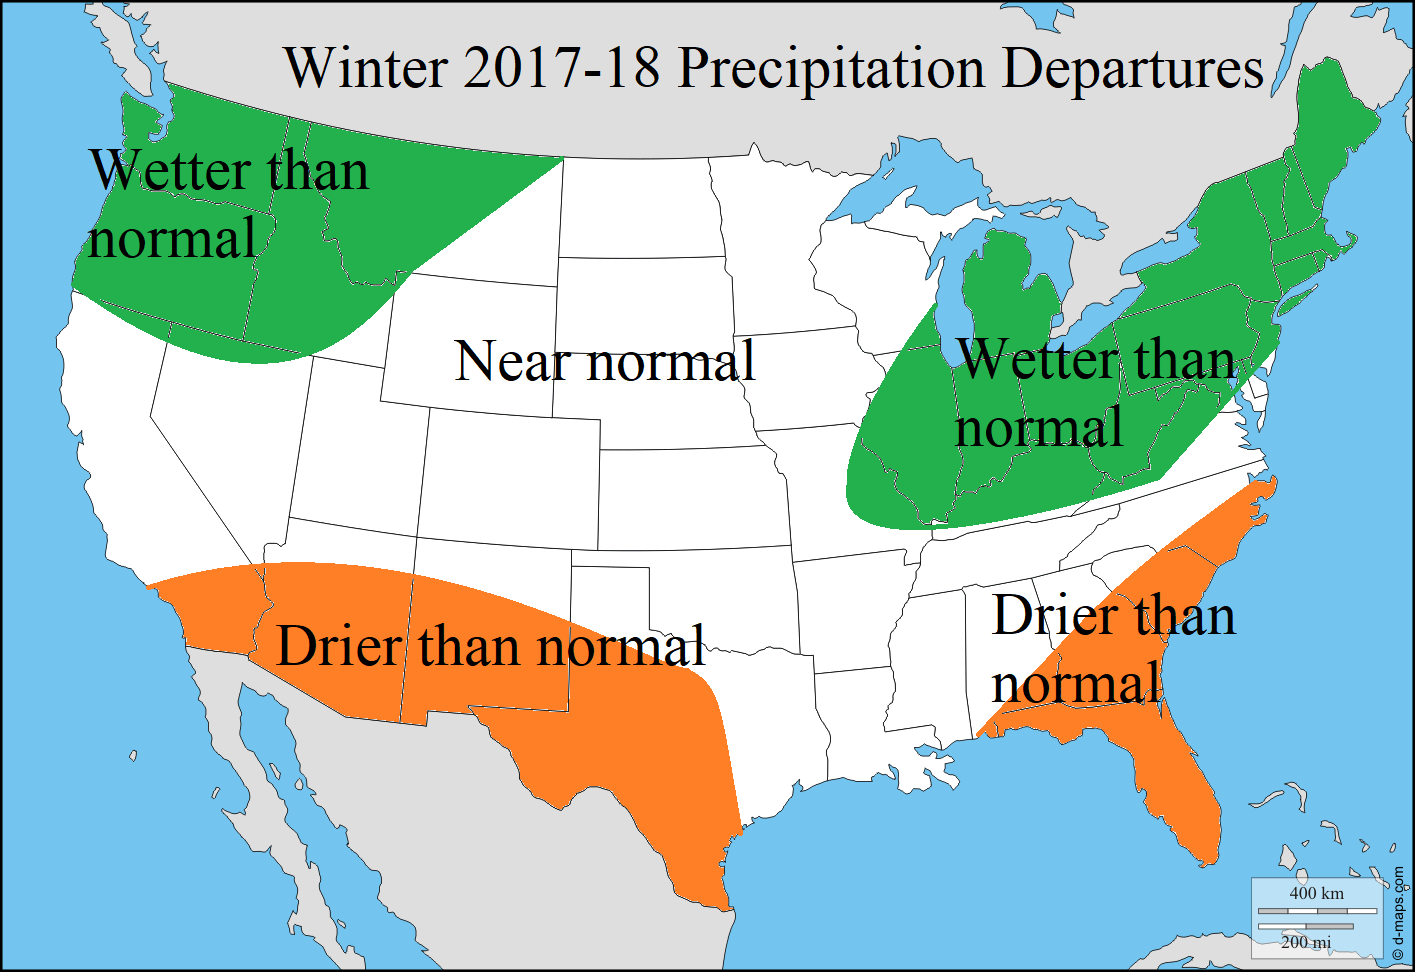 WINTER DJF PRECIP FORECAST